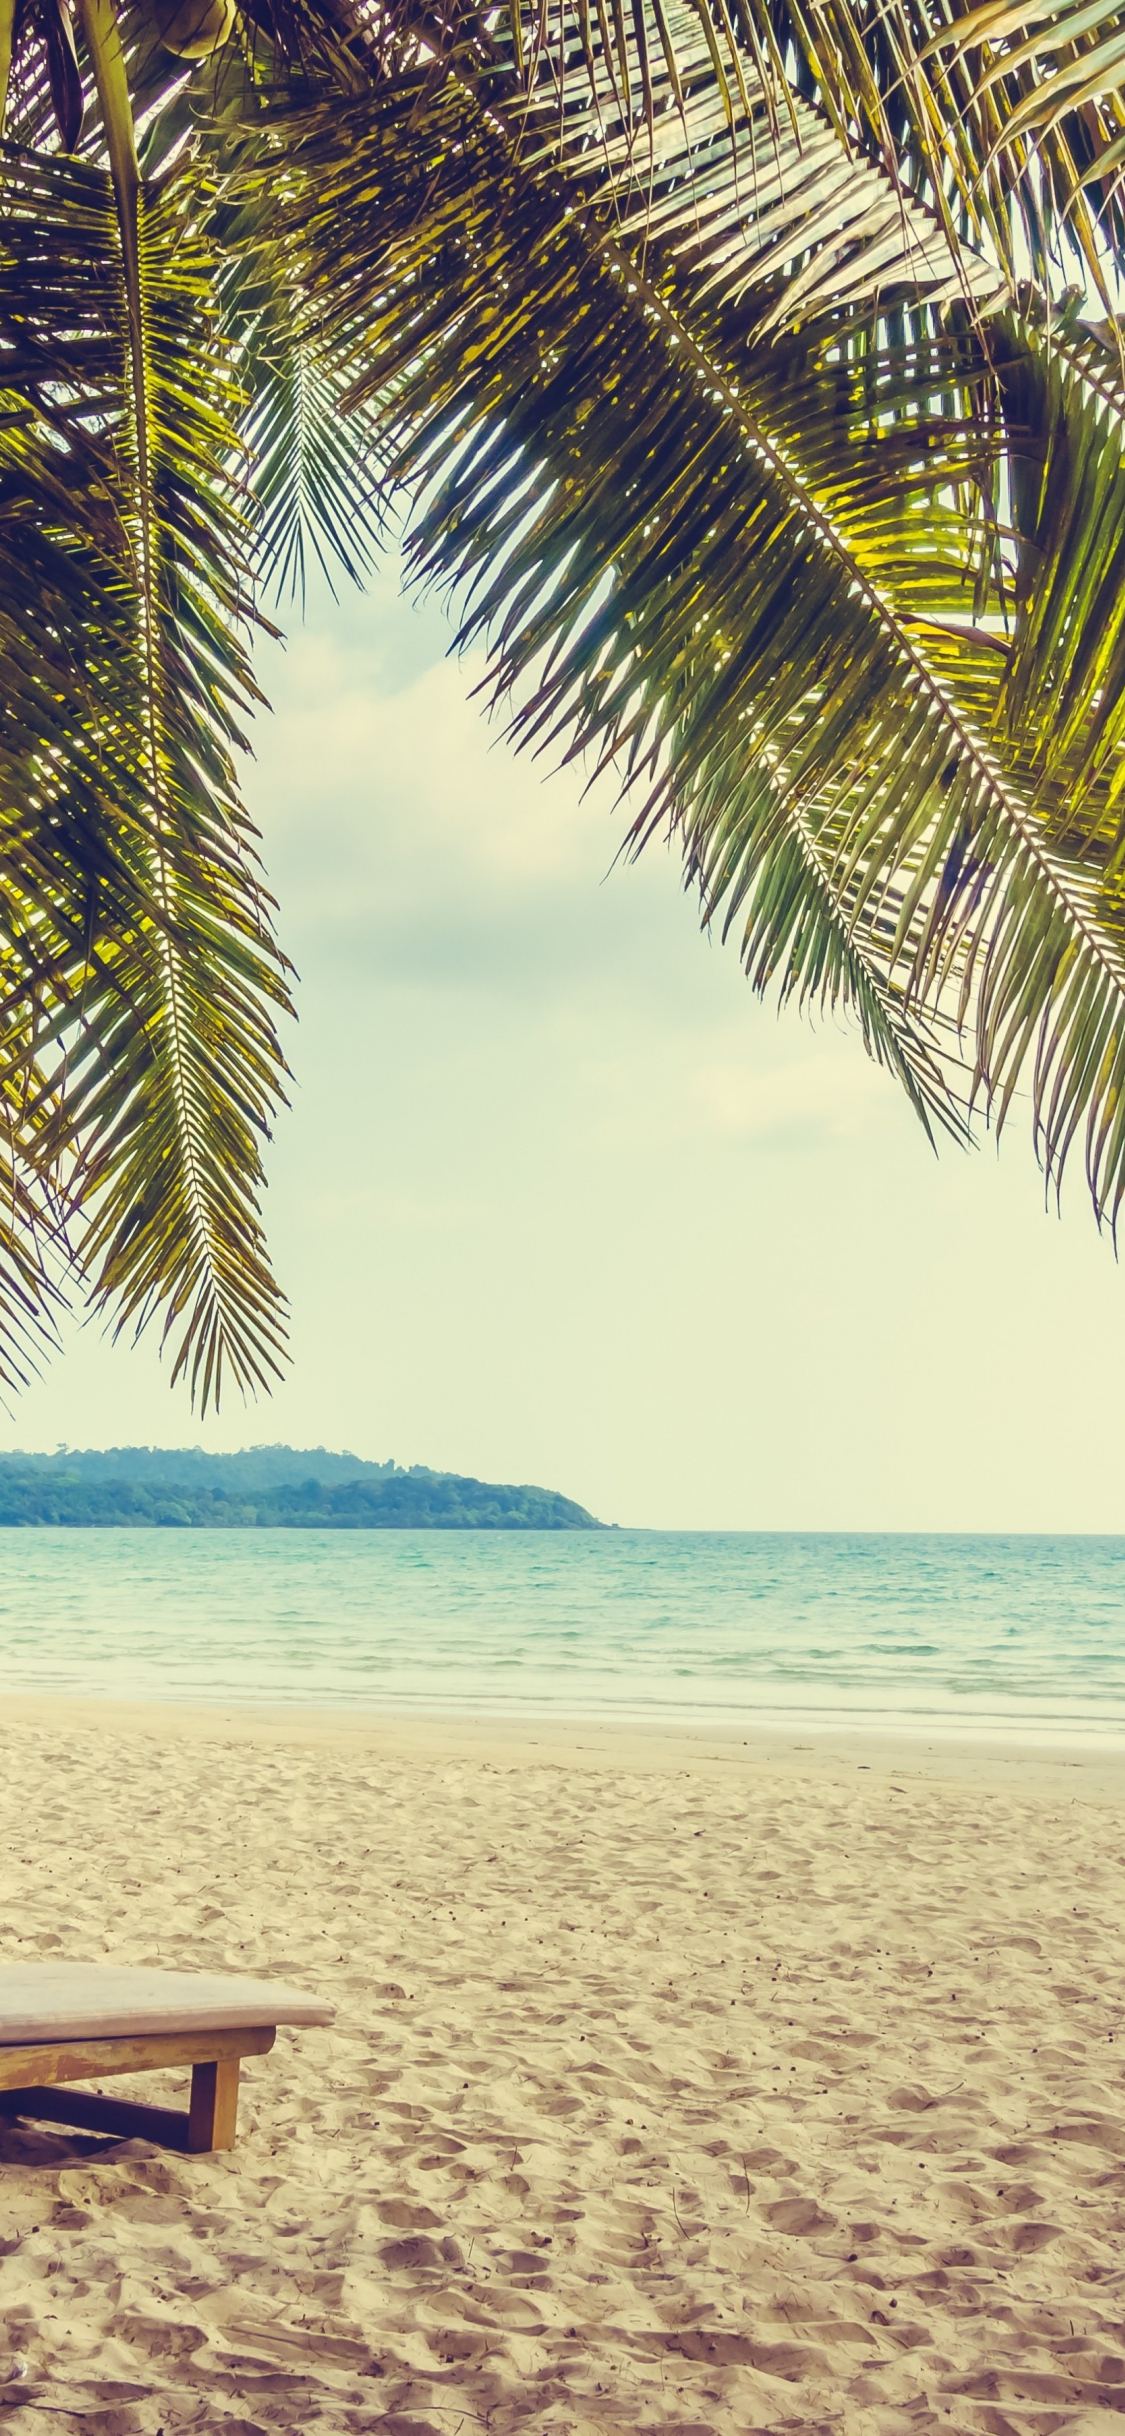 Download 1125x2436 Wallpaper Palm Tree Beach Sand Holiday Summer